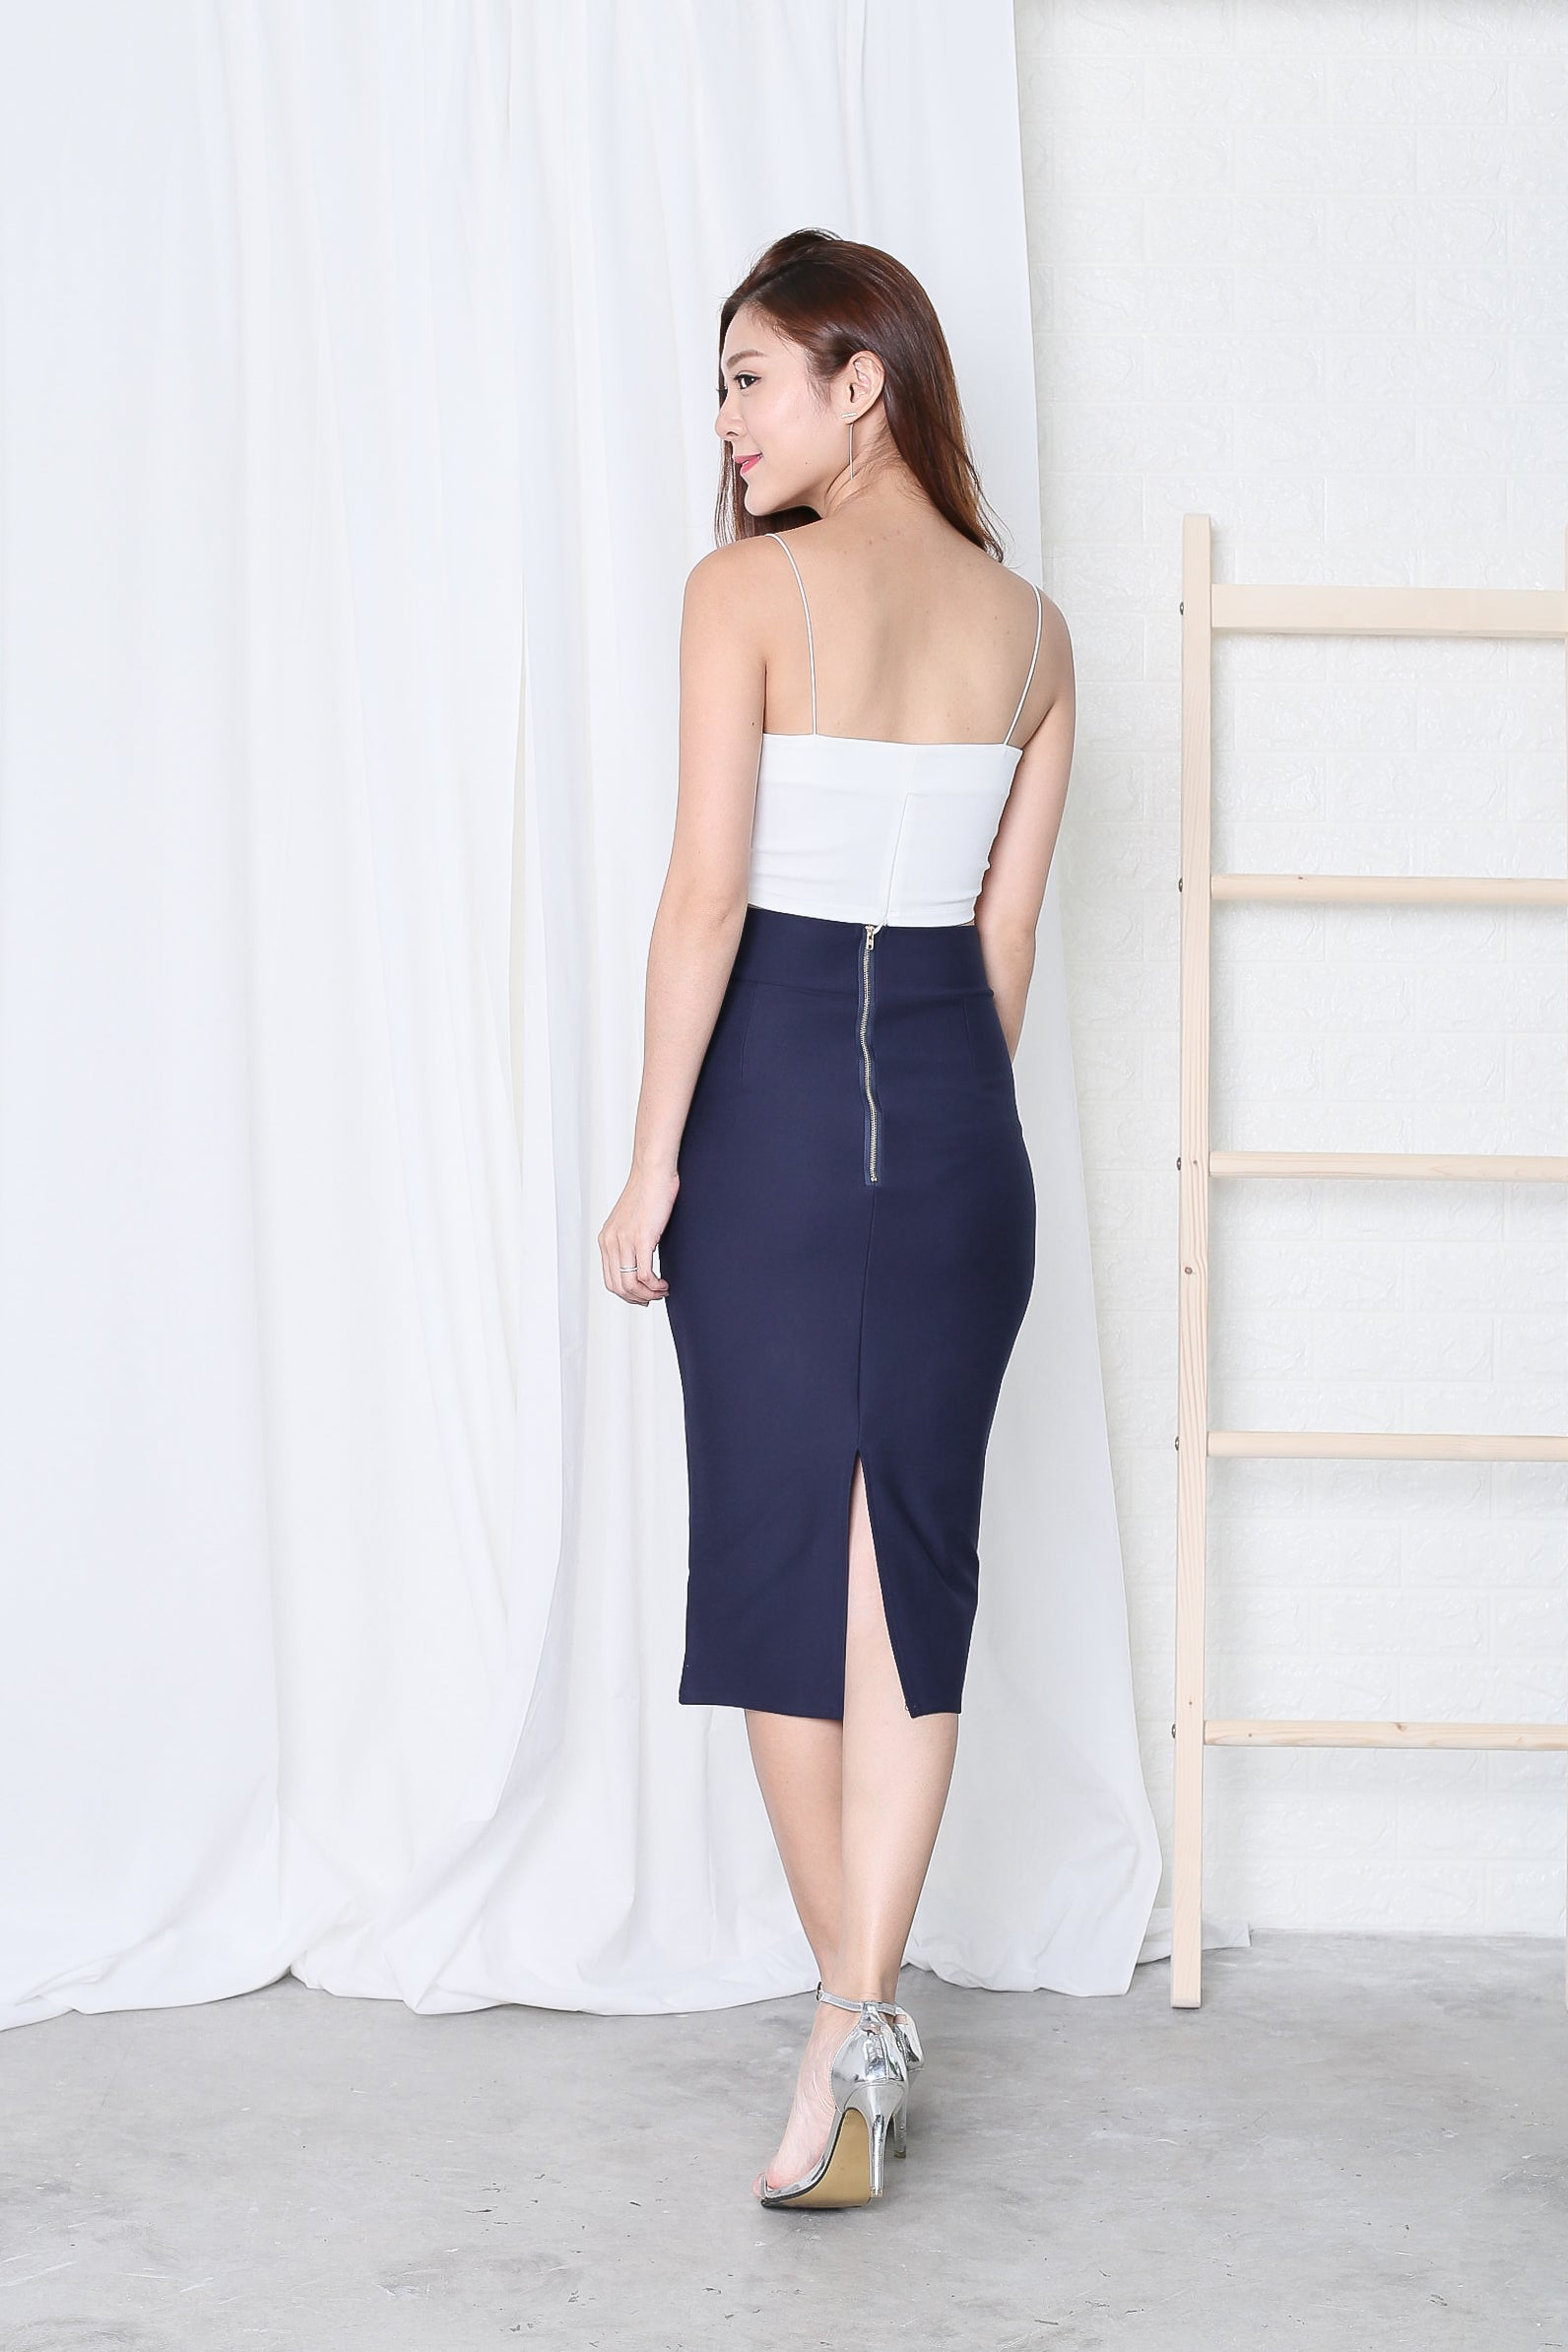 CLASSIC SLIT PENCIL SKIRT IN NAVY